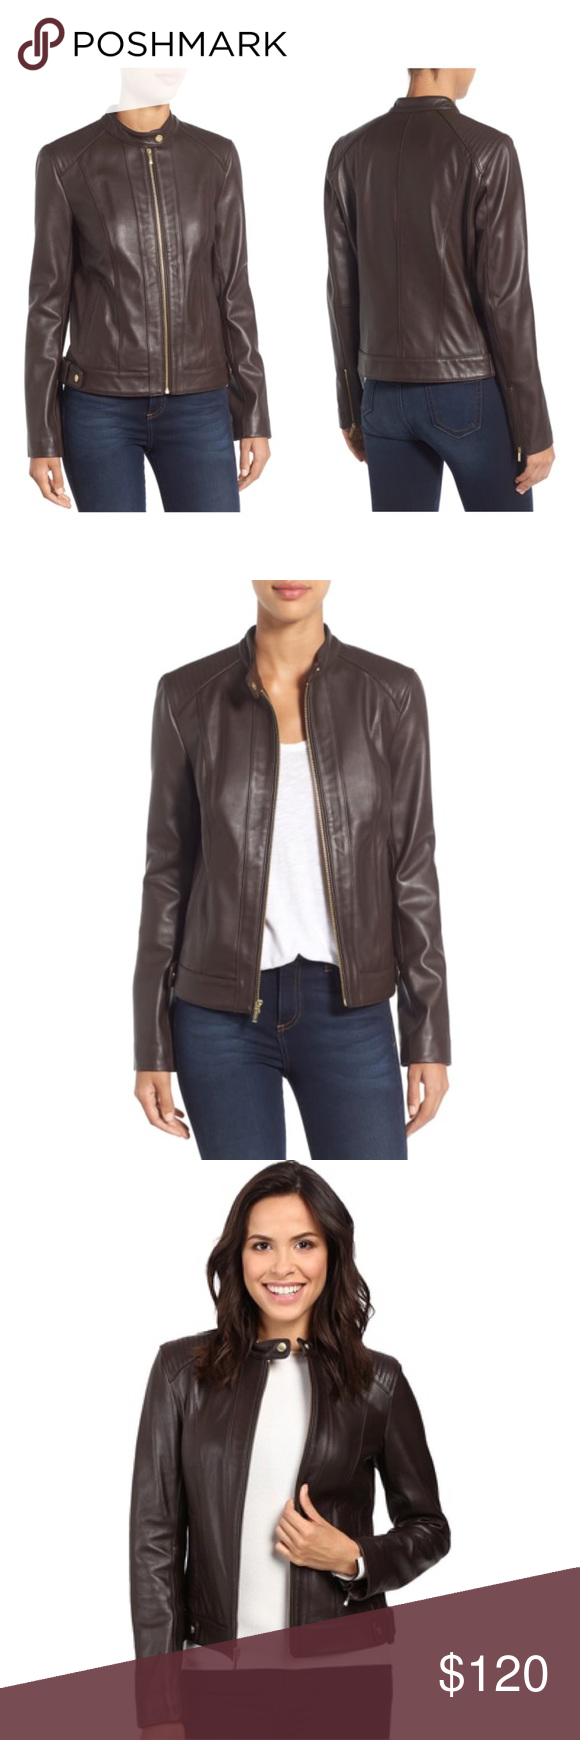 8bebaab2684f5 Cole Haan Leather Moto Jacket Add a splash of style to your outfit with  this chic